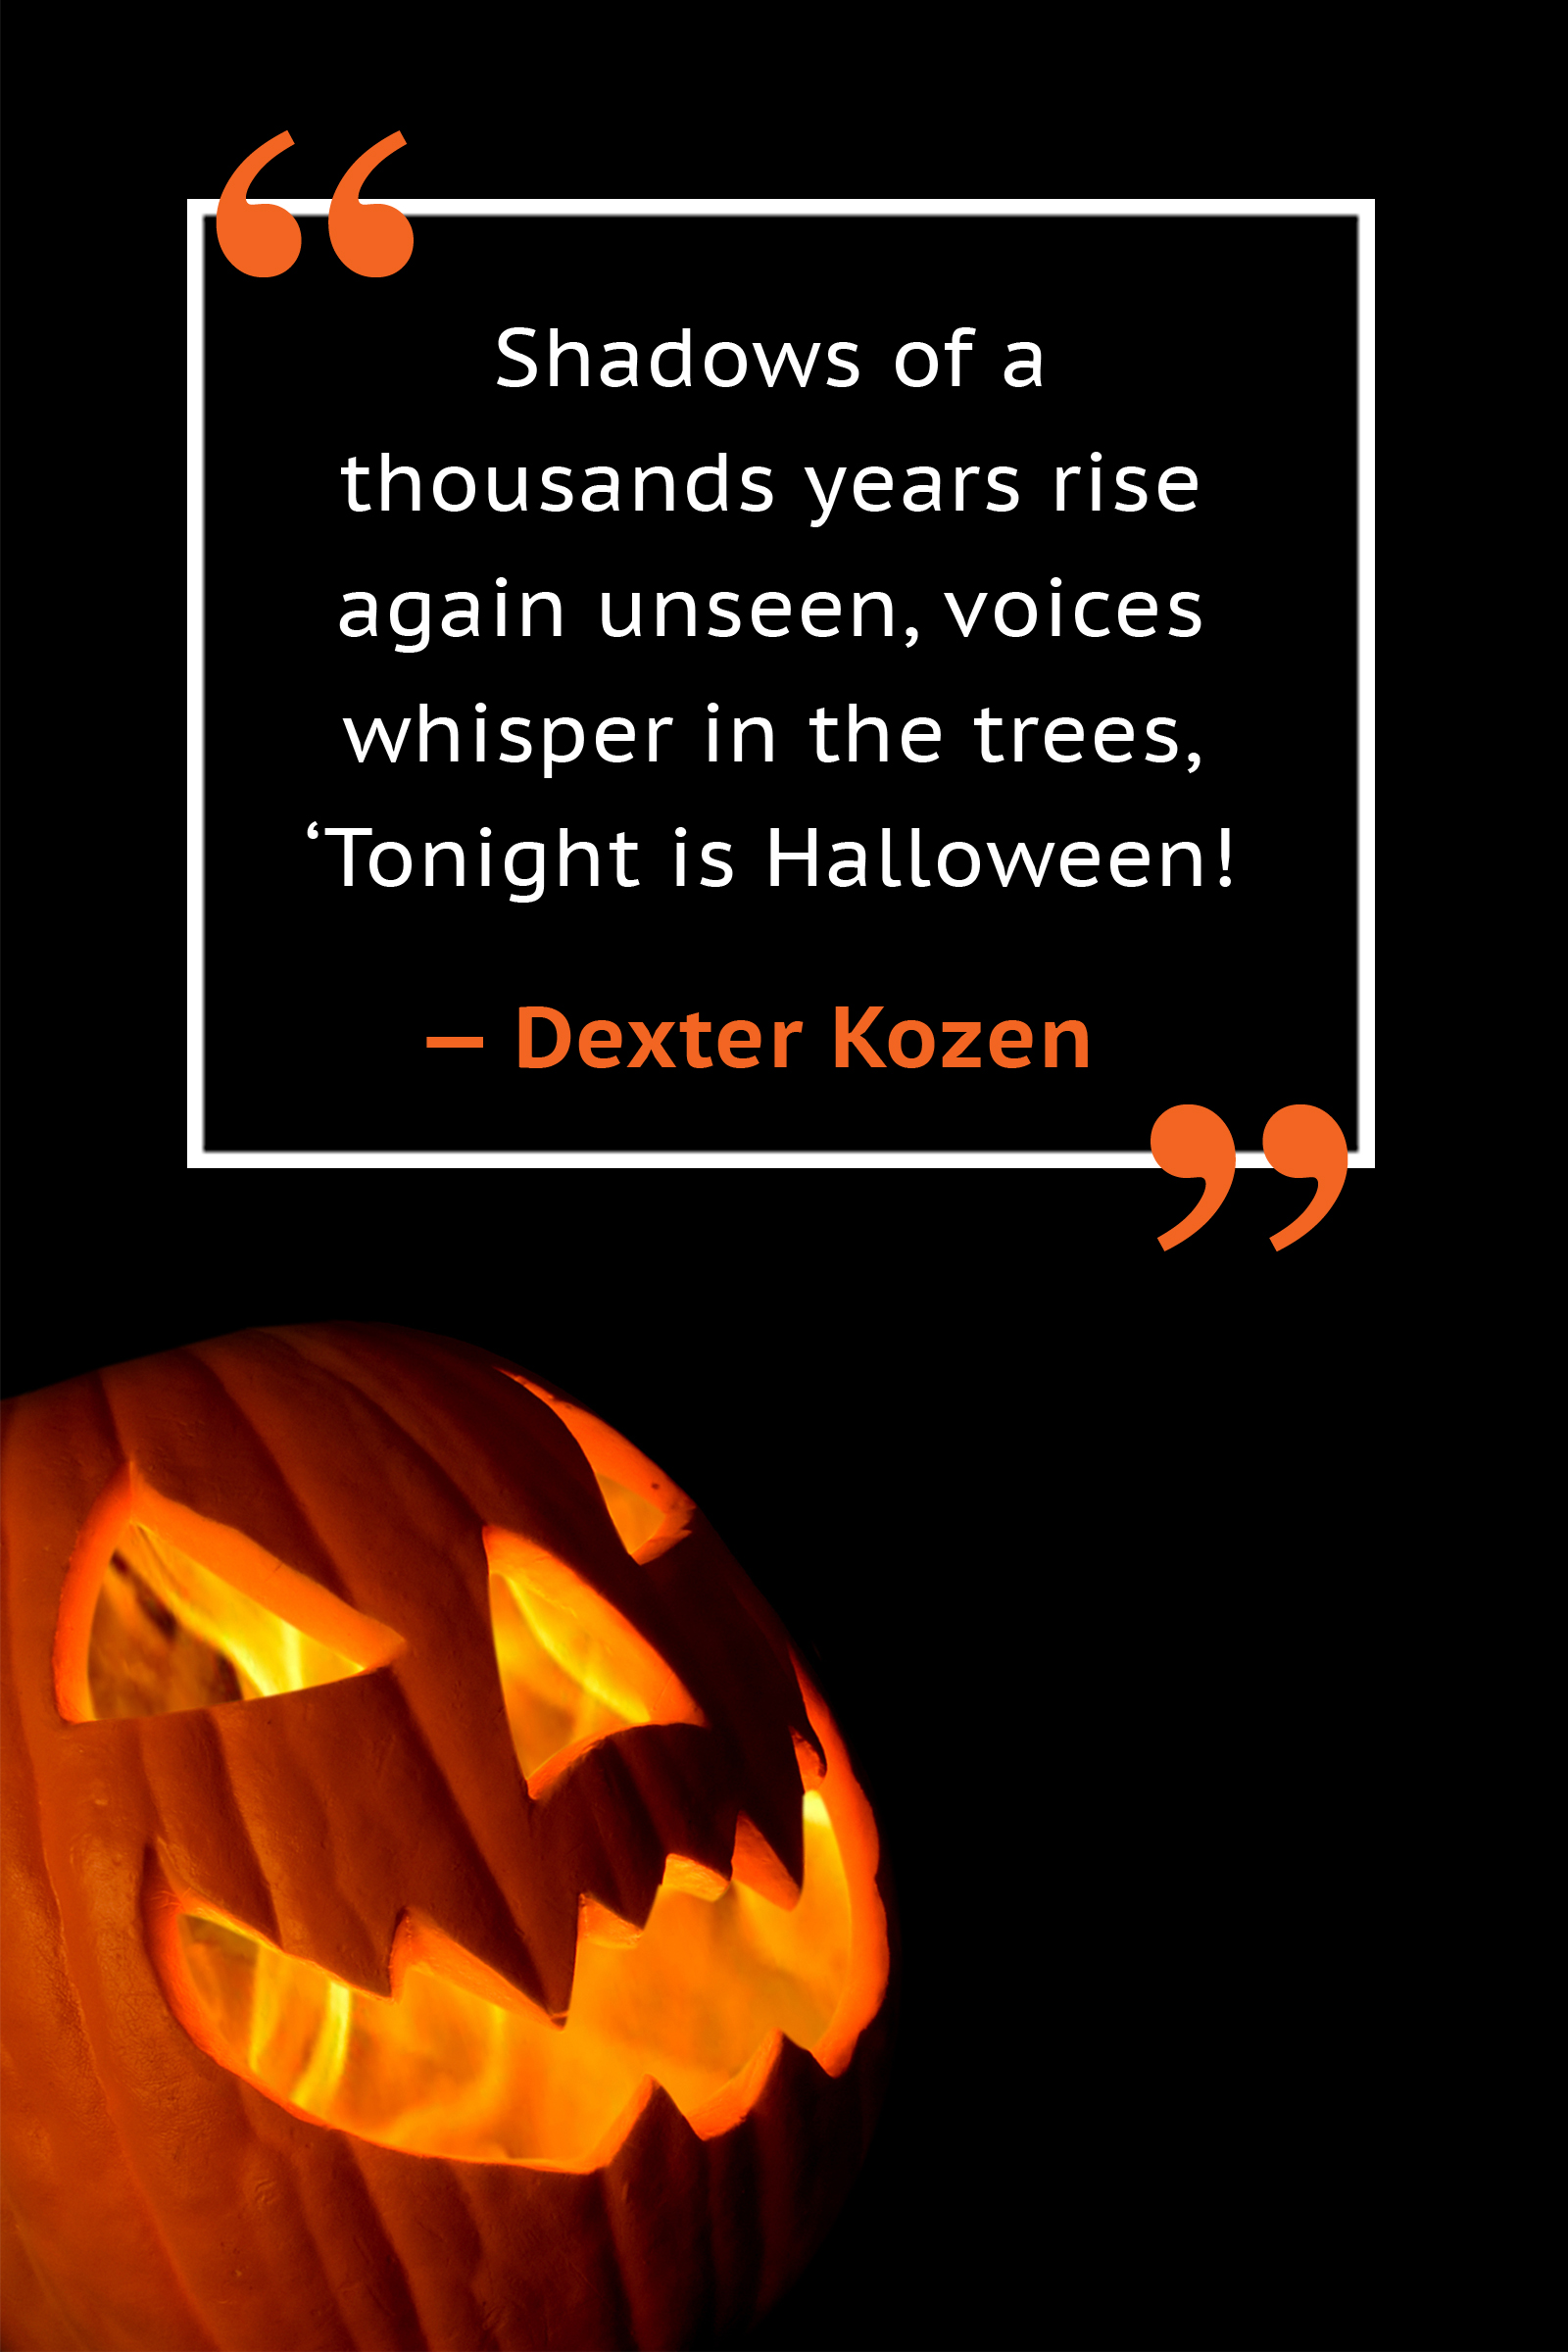 Happy Halloween Quotes And Sayings: 10 Happy Halloween Quotes